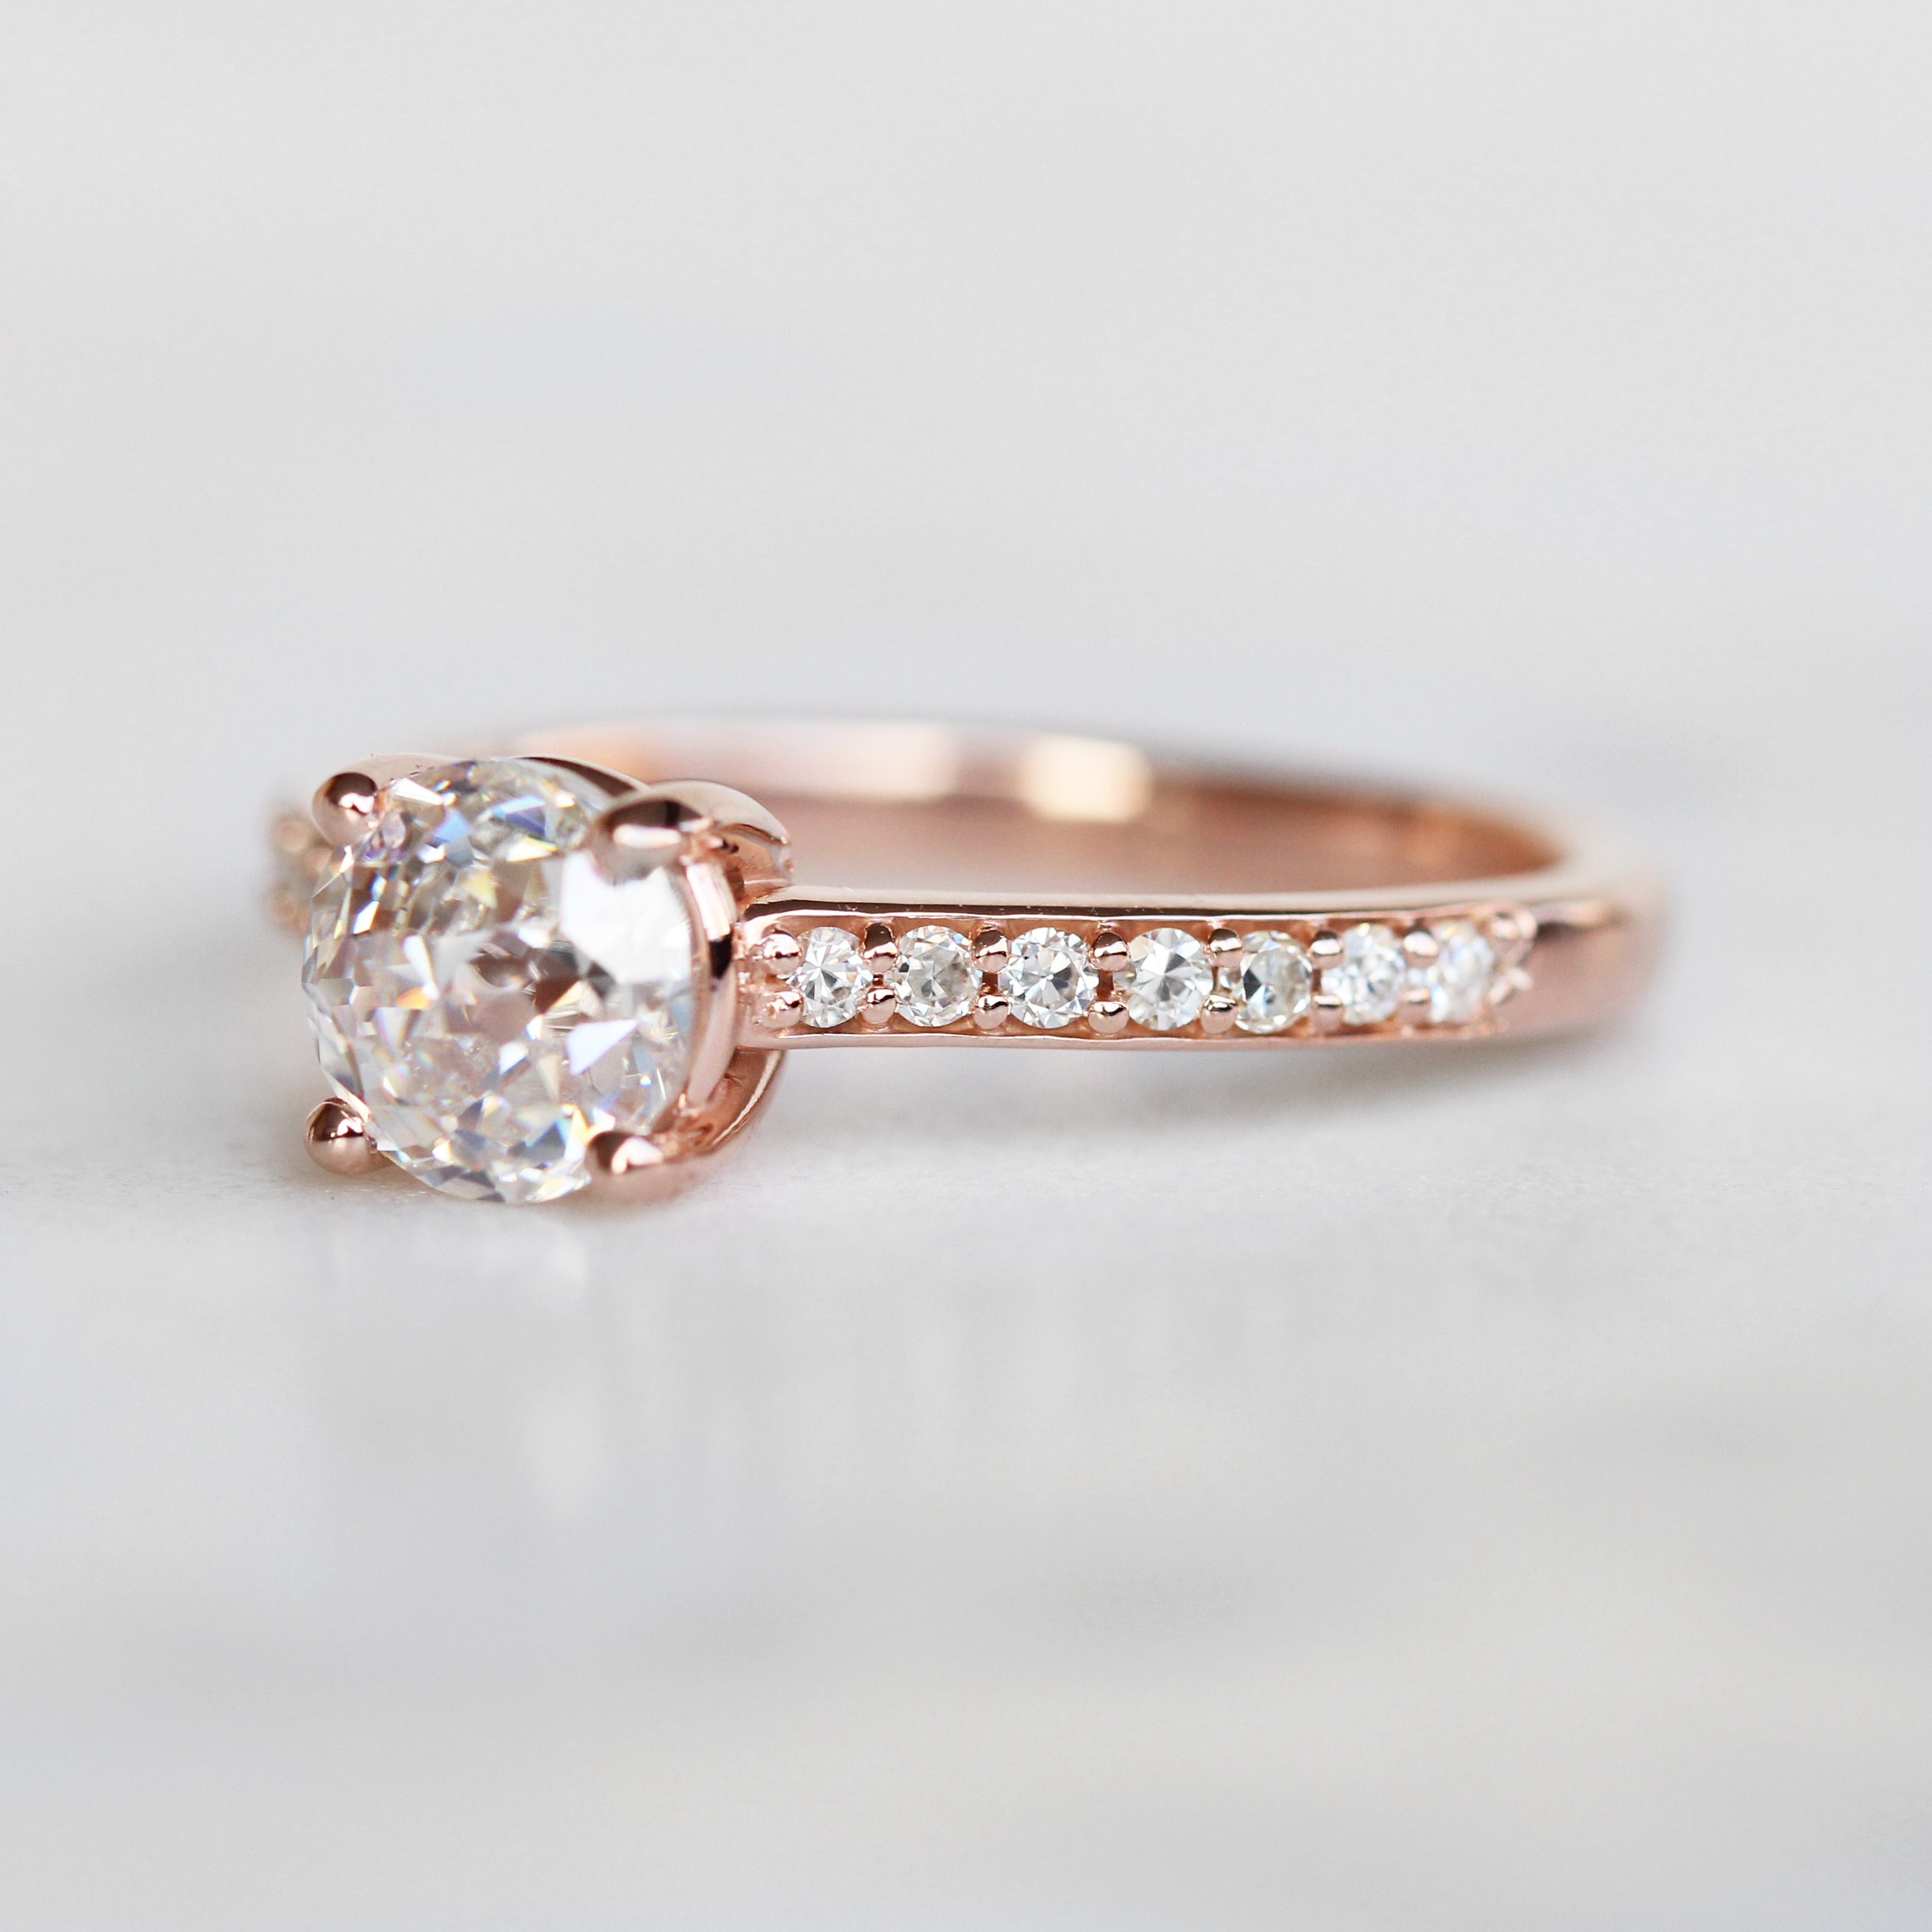 Samantha- Raine Ring with 1.20ct Jubliee Cut Moissanite in 10k Rose Gold- Ready to Size and Ship - Celestial Diamonds ® by Midwinter Co.